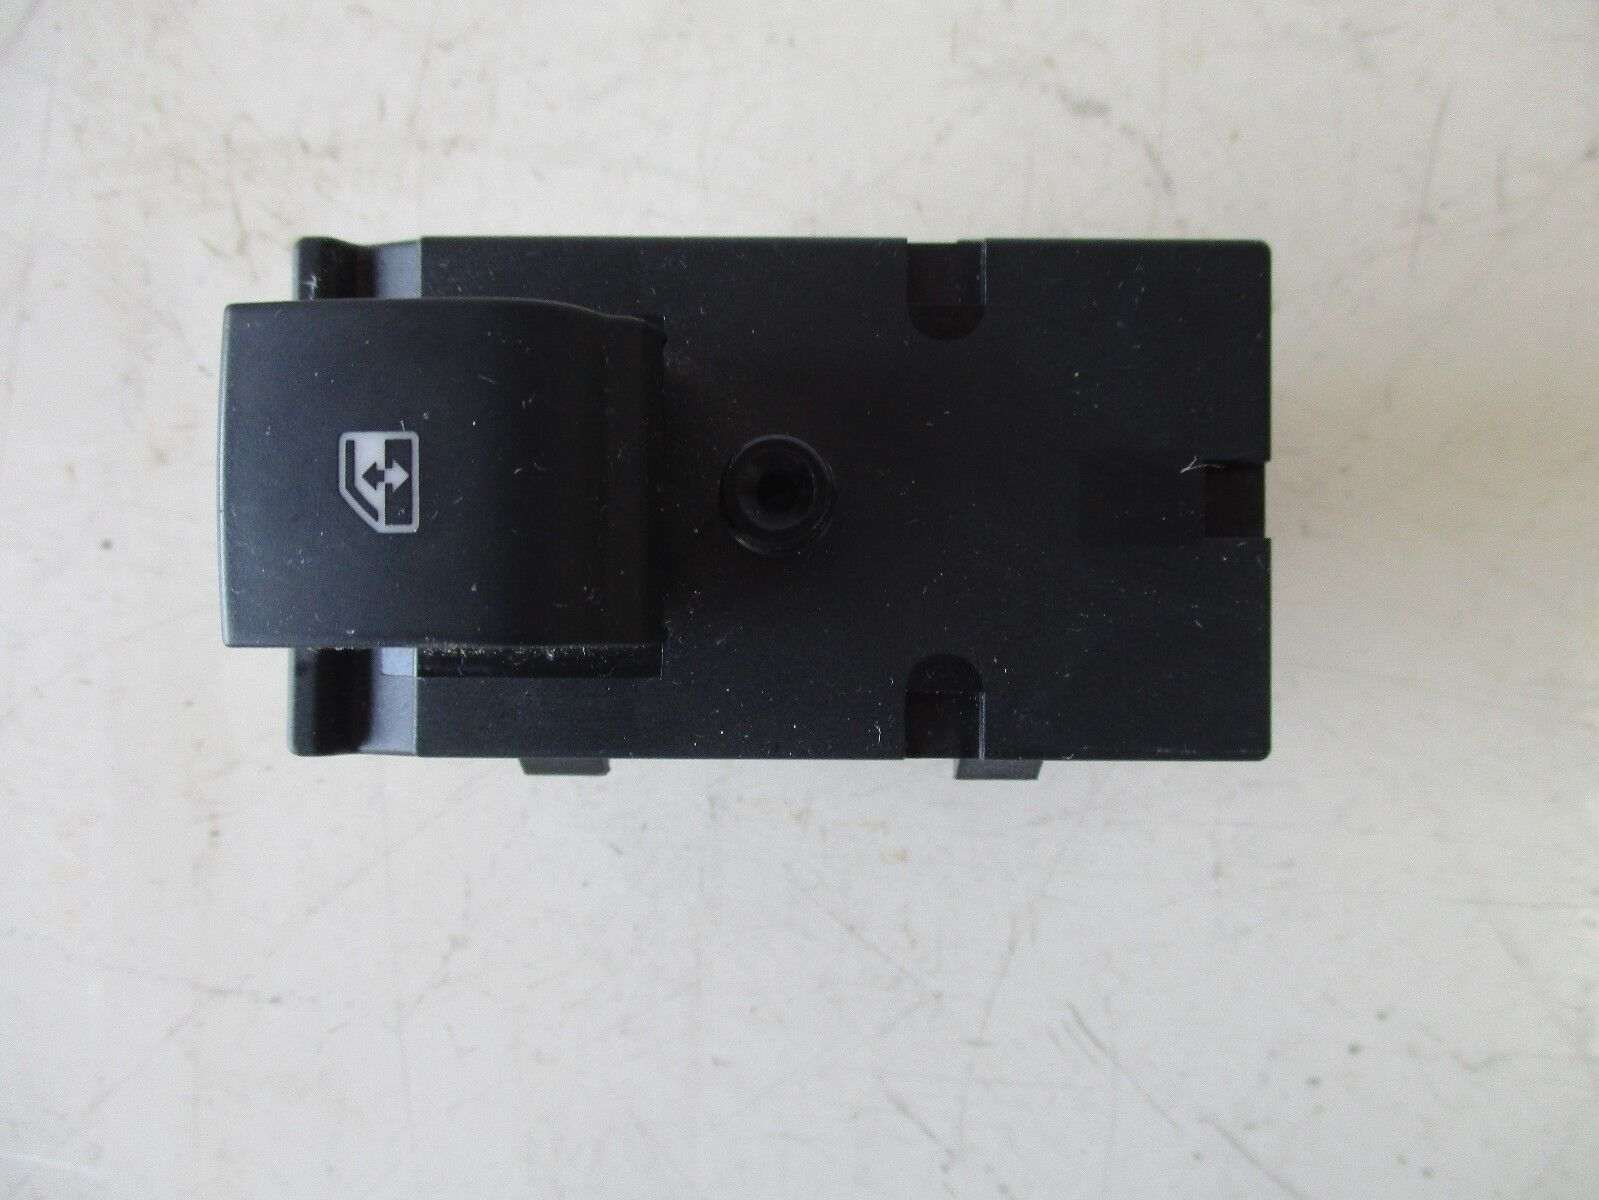 2013 CRUZE 1.8L 4-CYL 1LS OEM RH REAR DOOR WINDOW SWITCH